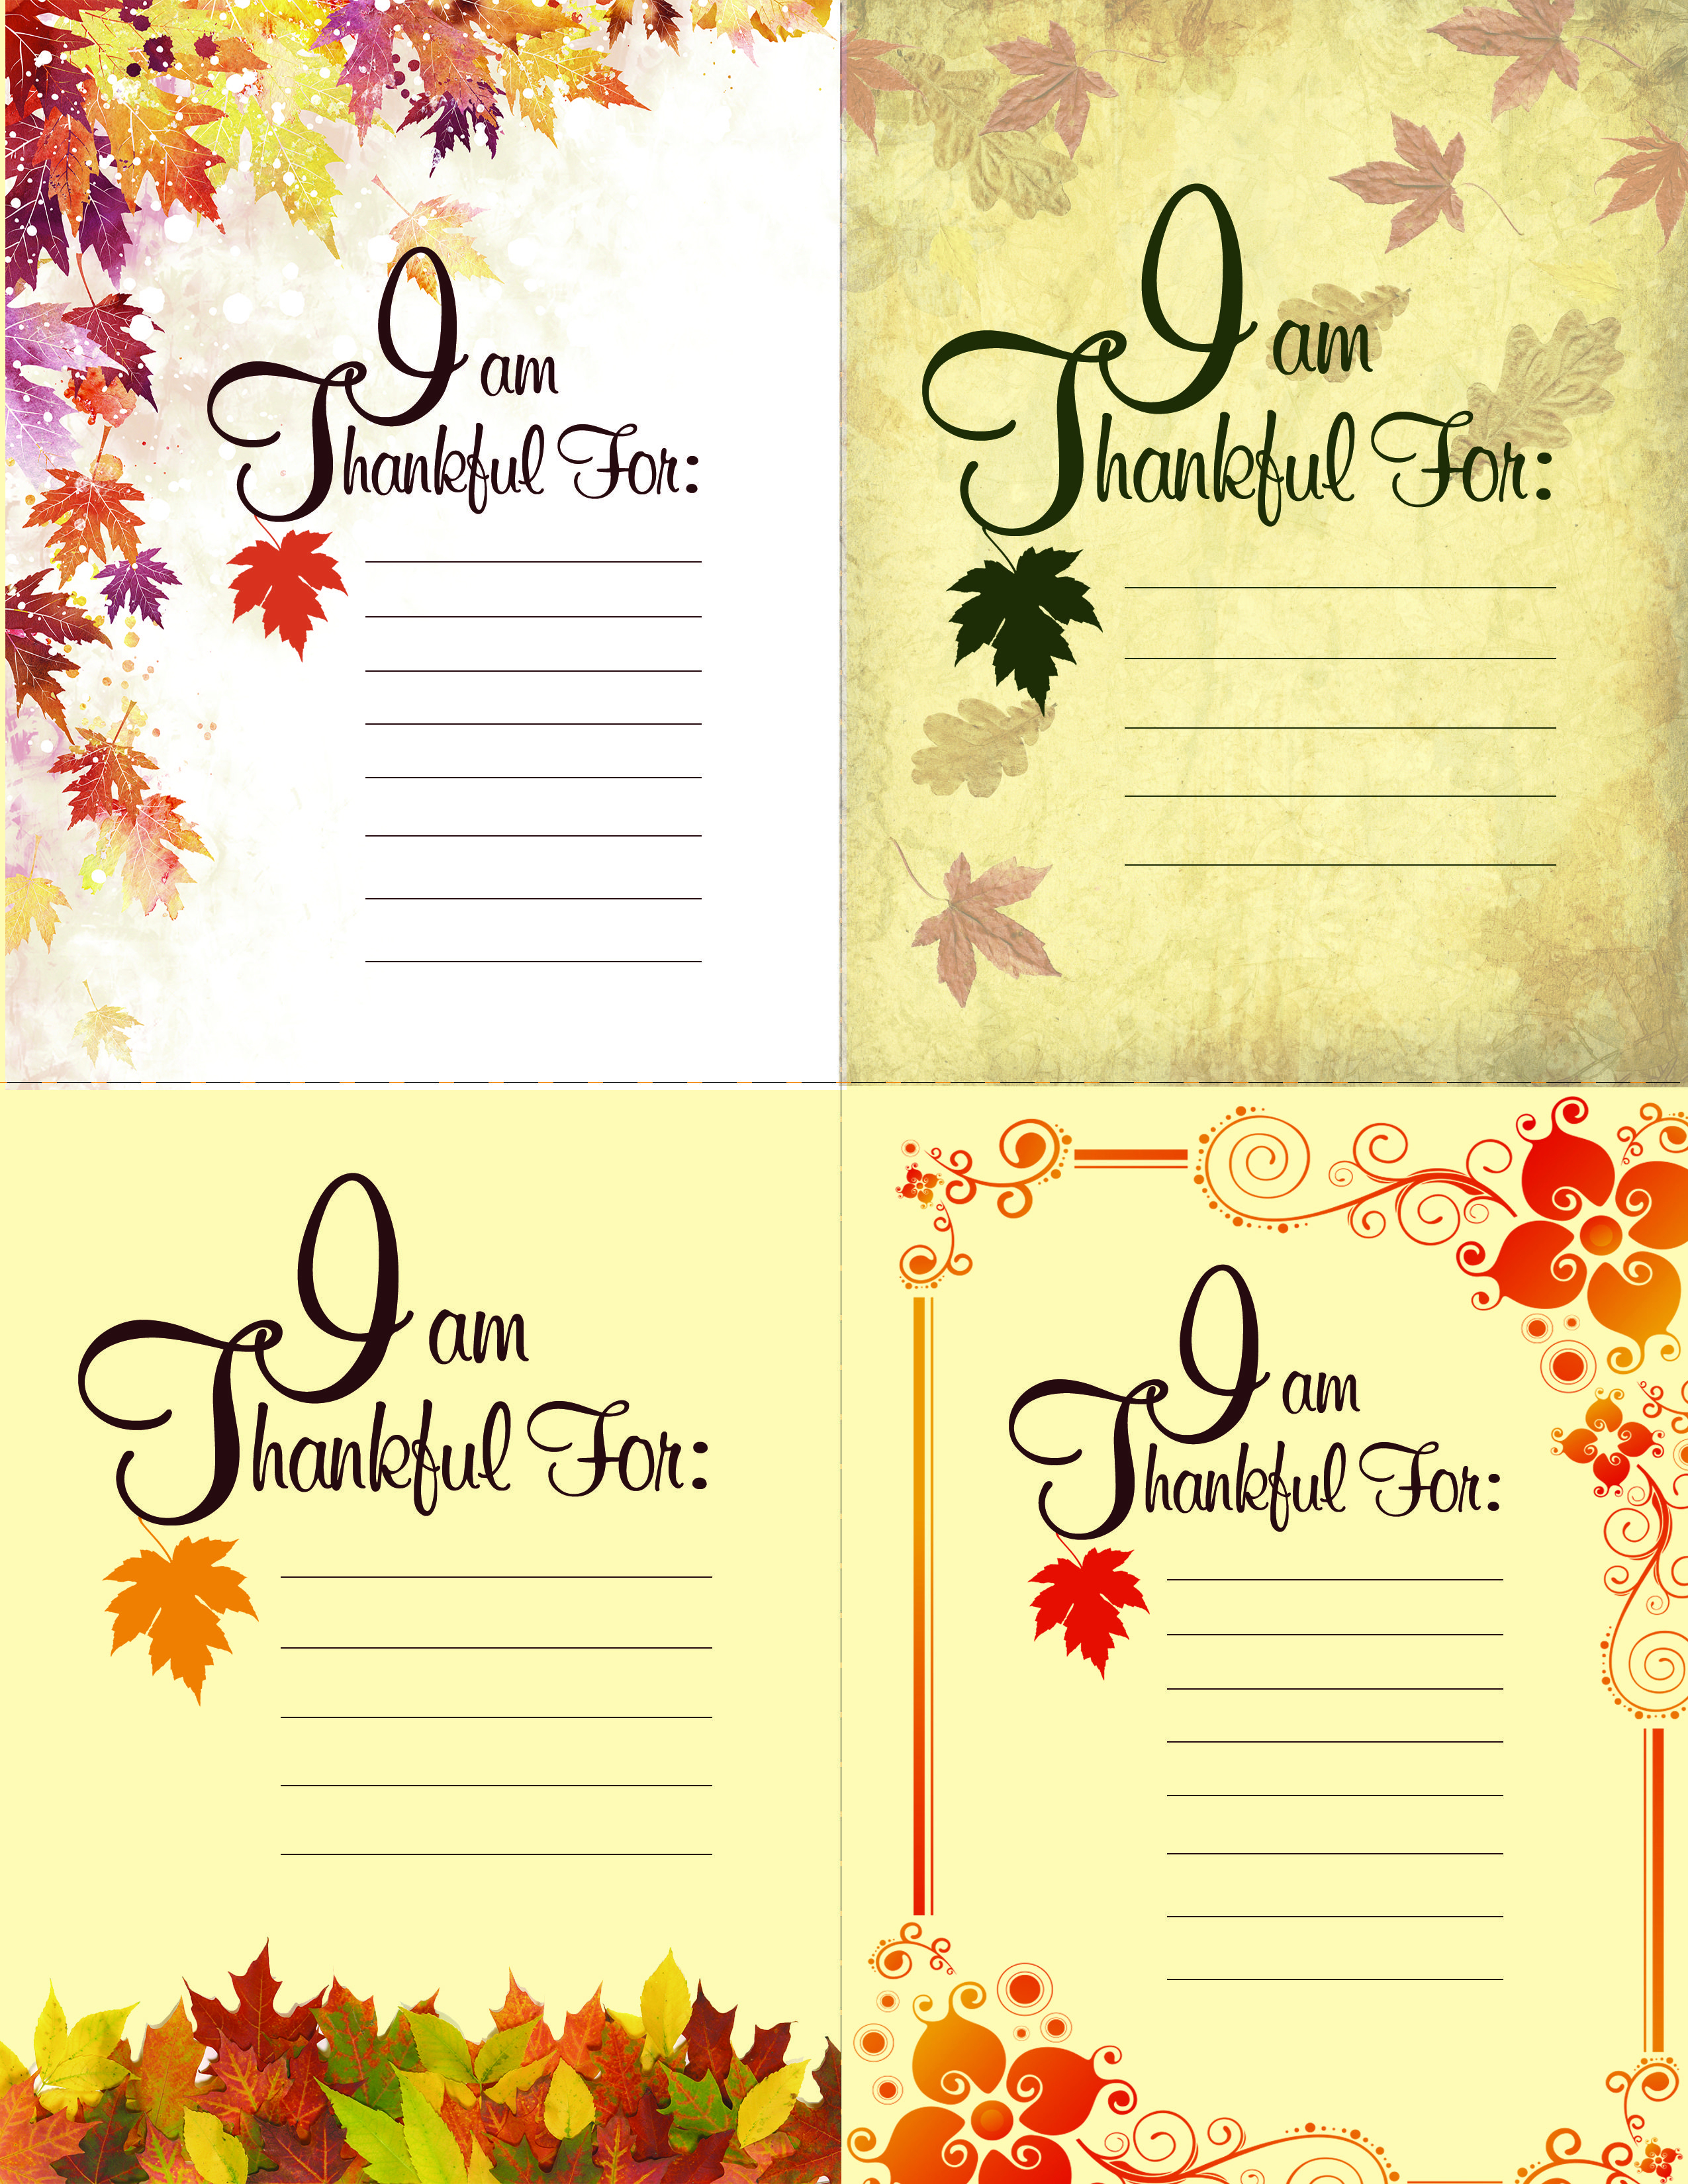 Printable Thanksgiving Place Setting Cards | Autumn | Pinterest - Free Printable Mothers Day Cards Blue Mountain